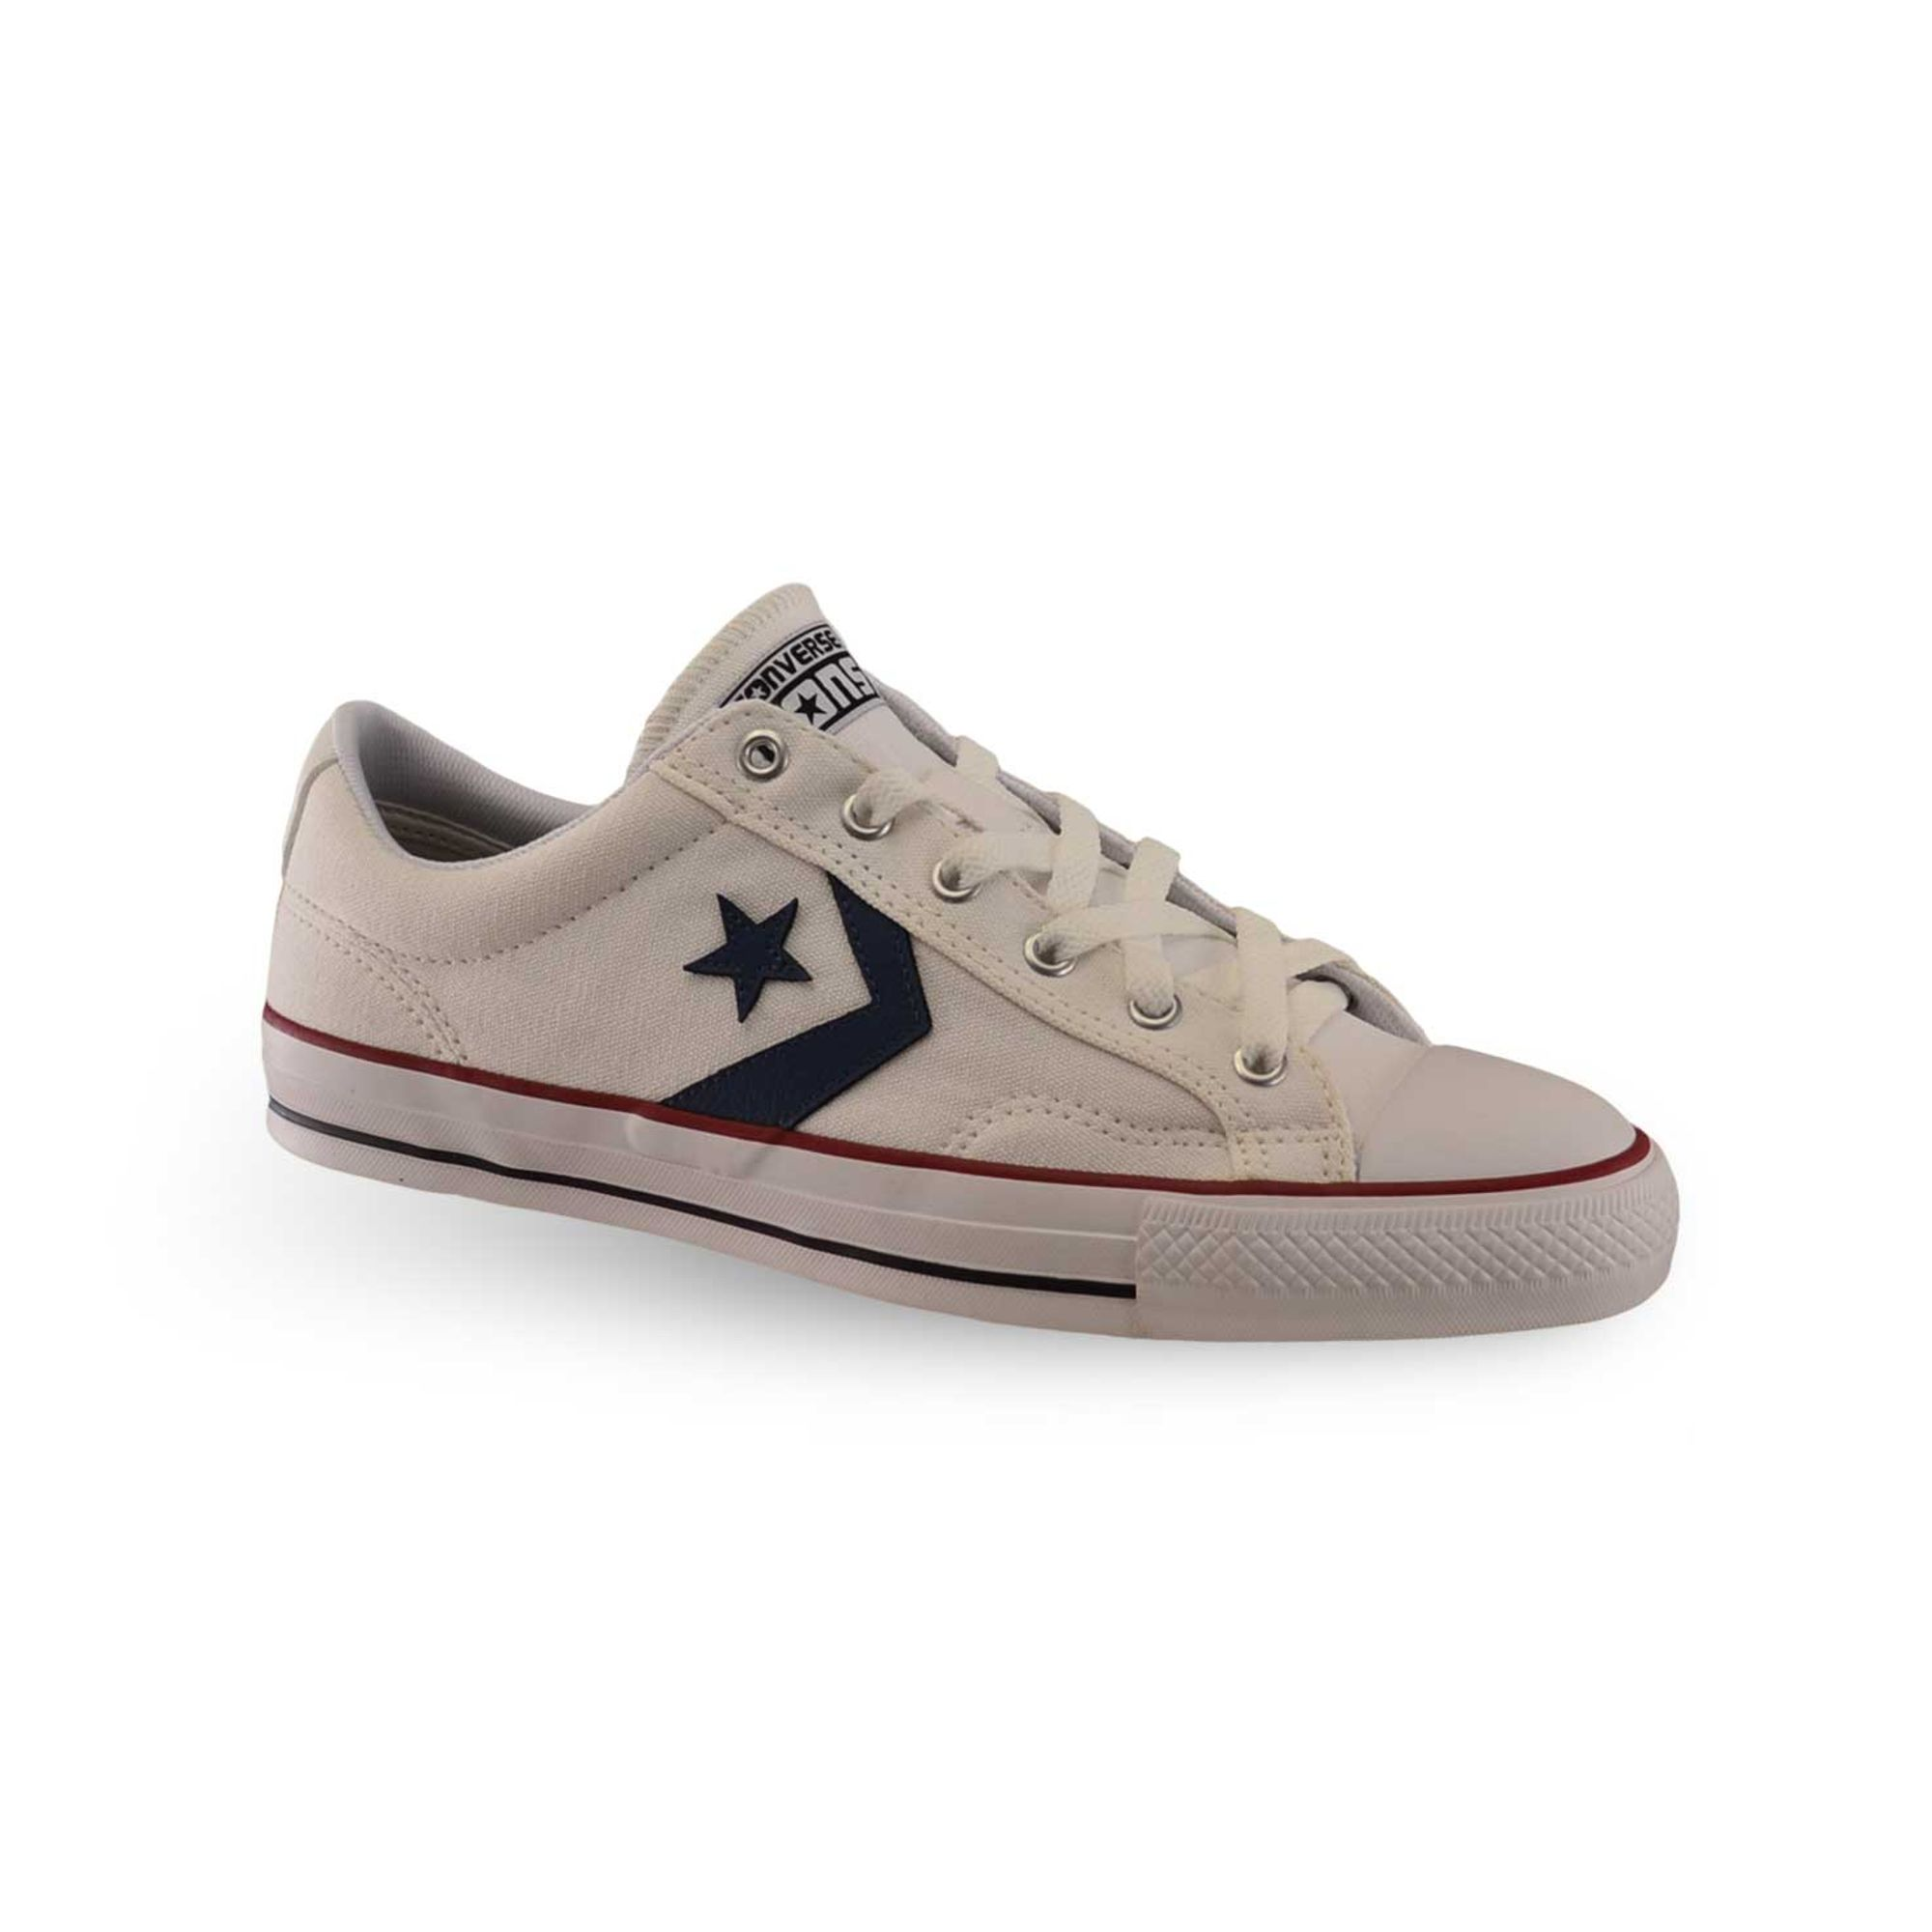 ZAPATILLAS CONVERSE STAR PLAYER redsport